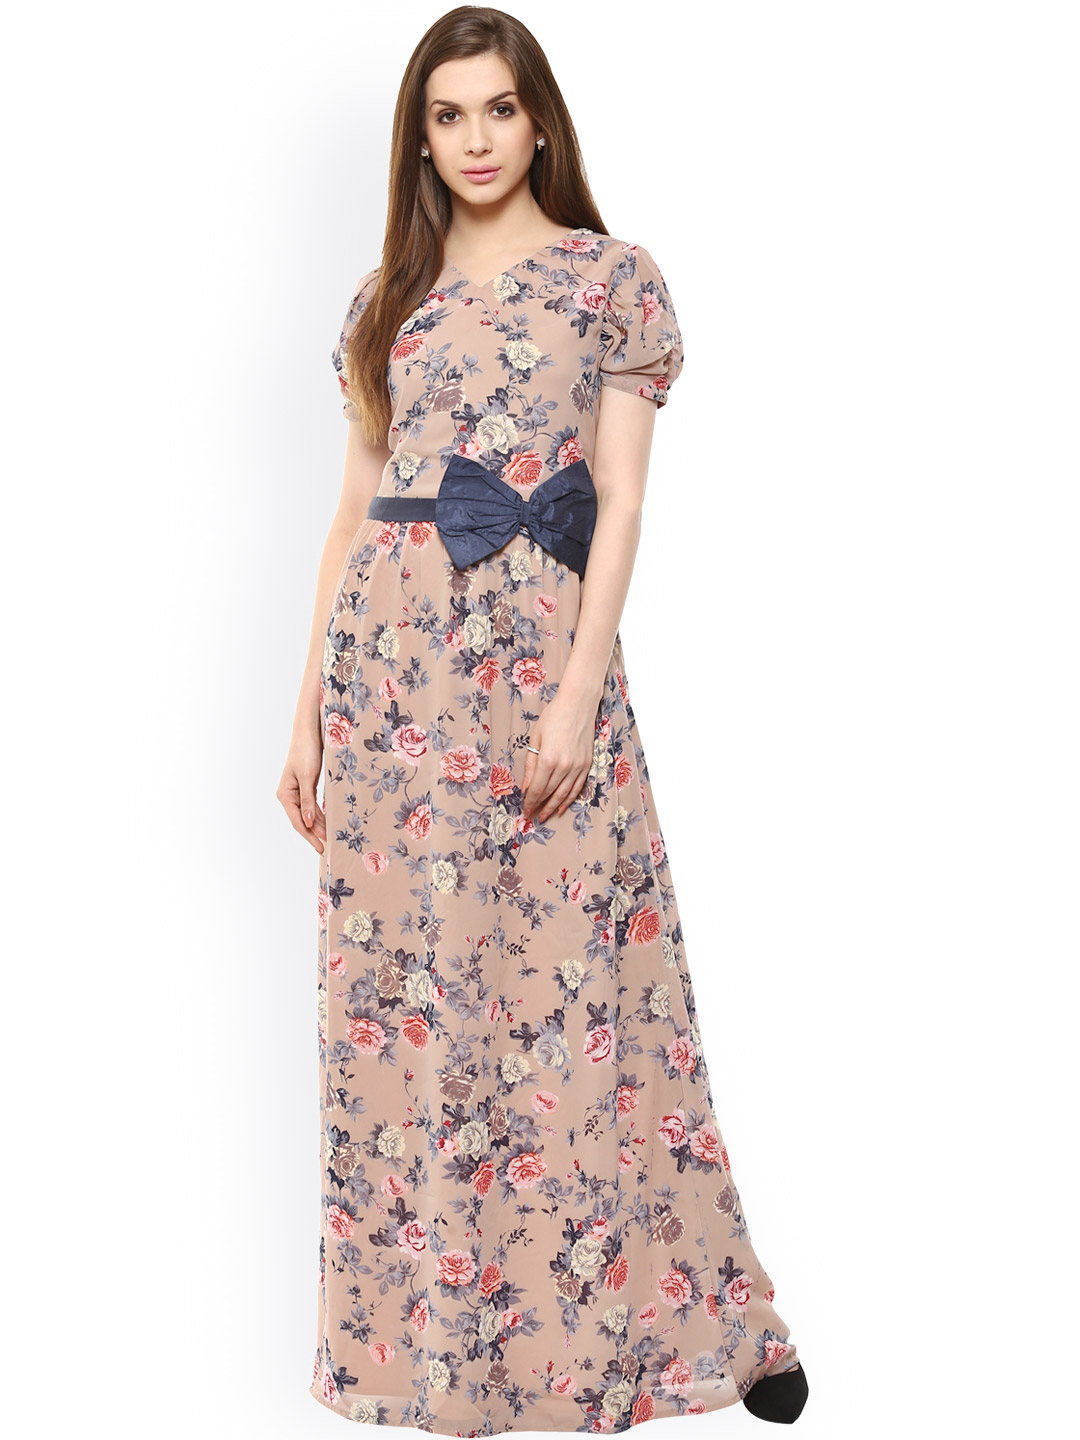 87db0878780 Floral Print Maxi Dress Online India - Aztec Stone and Reclamations